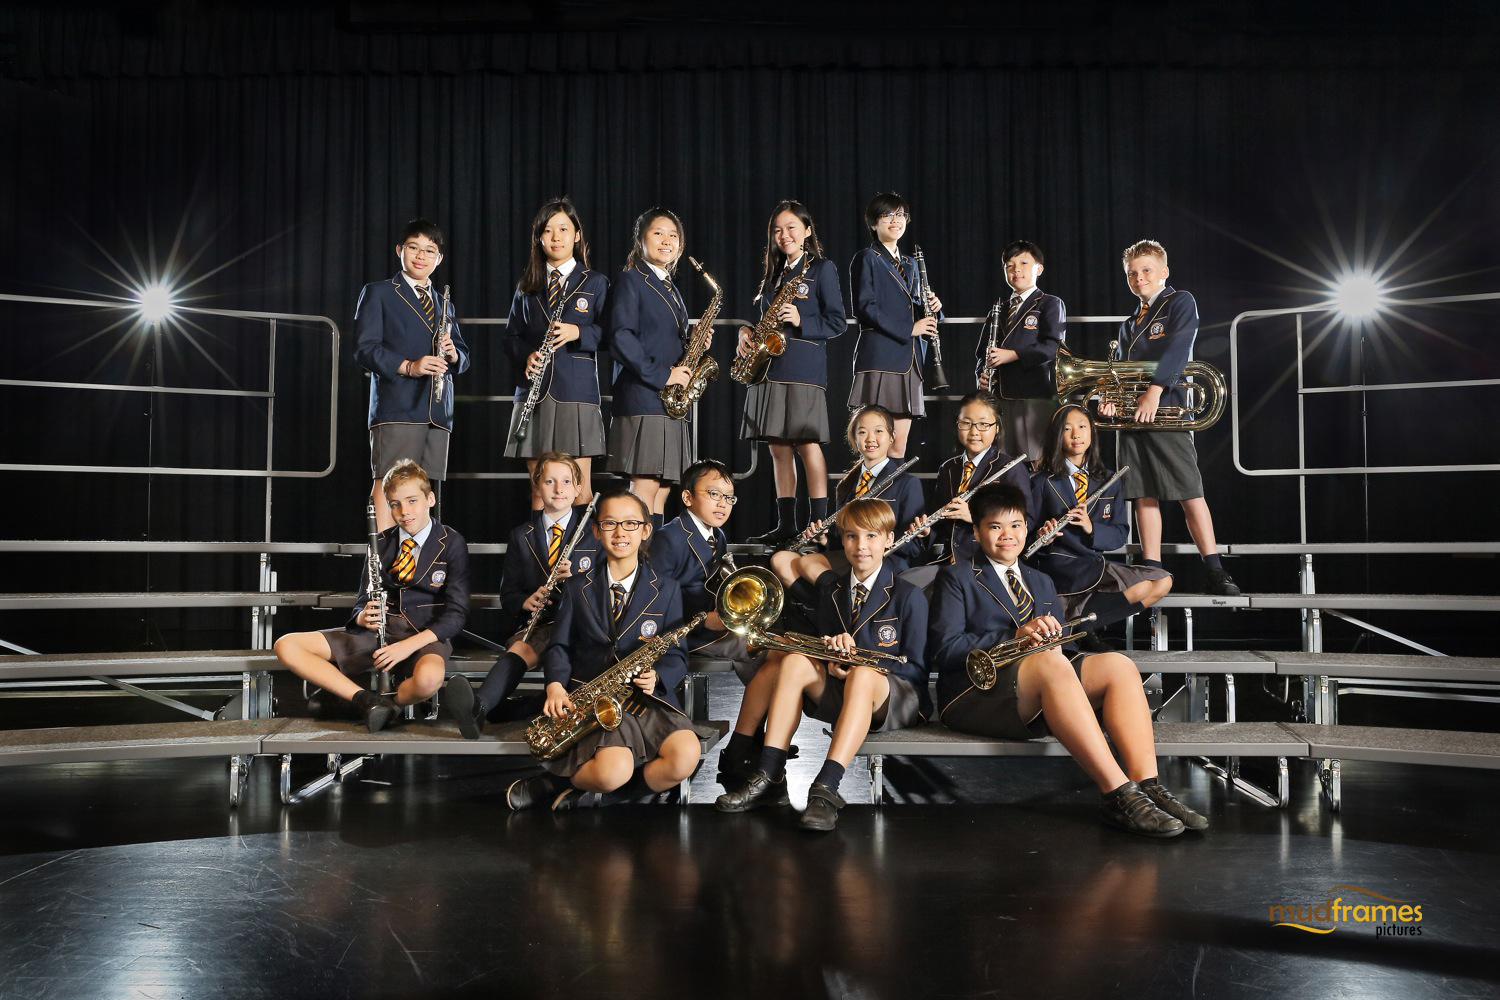 The British International School Senior Wind Band